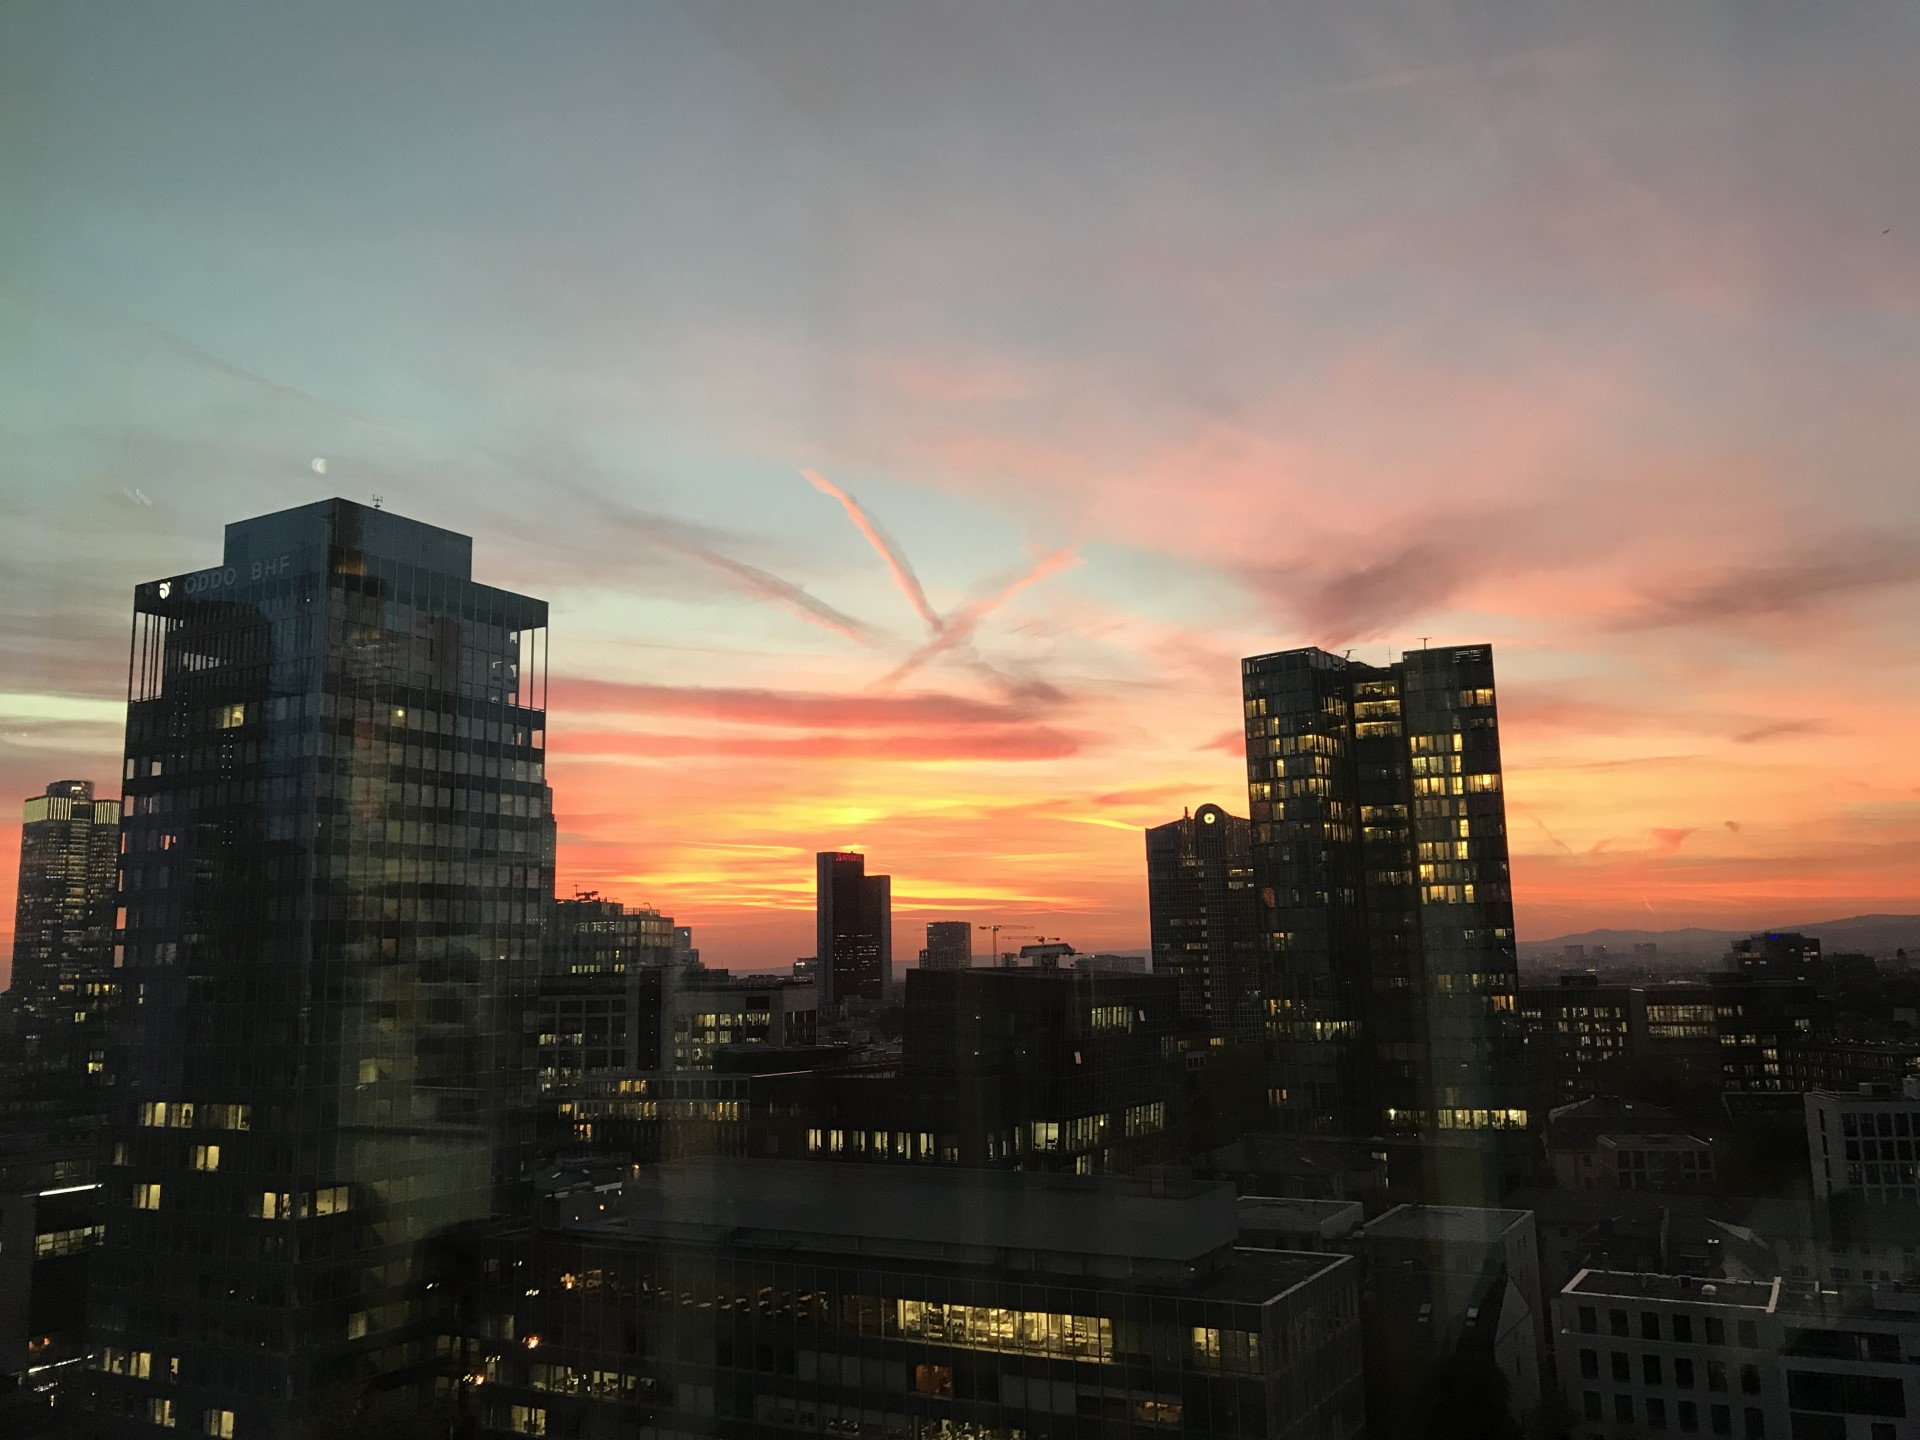 Above the roofs of Frankfurt - romantic evening atmosphere at our Frankfurt location.